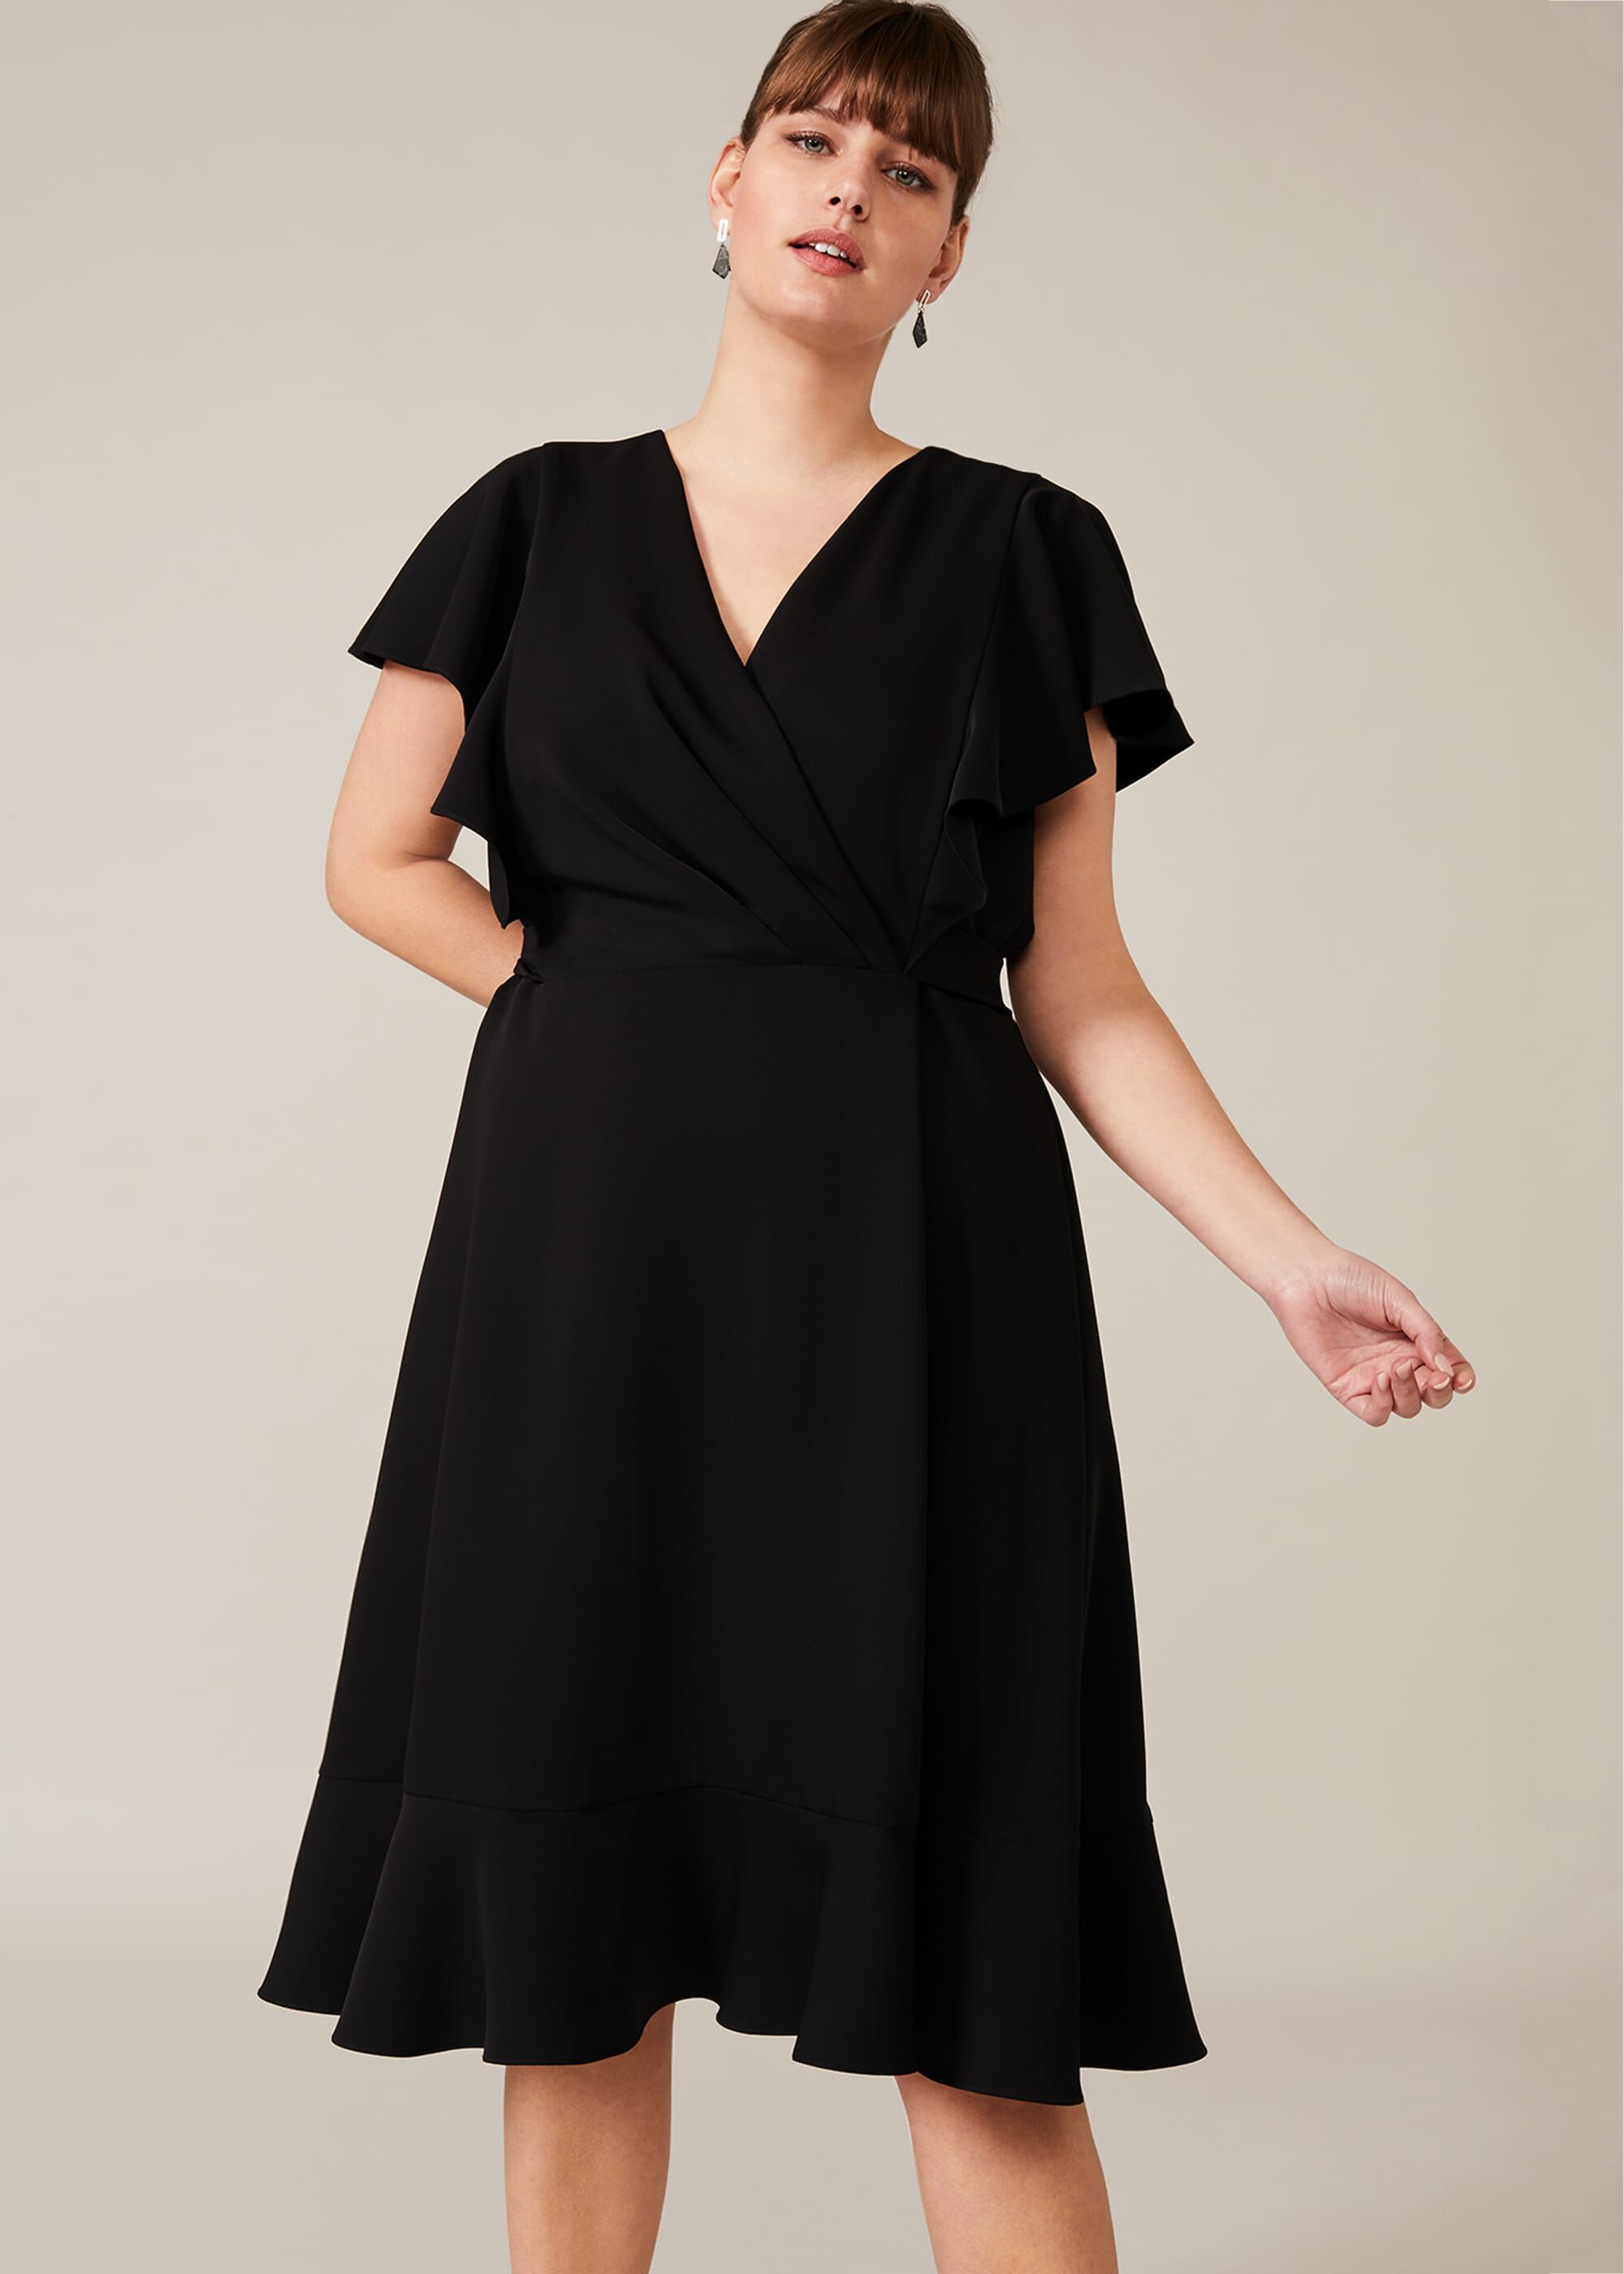 Studio 8 Ruth Frill Sleeve Dress, Black, Fit & Flare, Occasion Dress